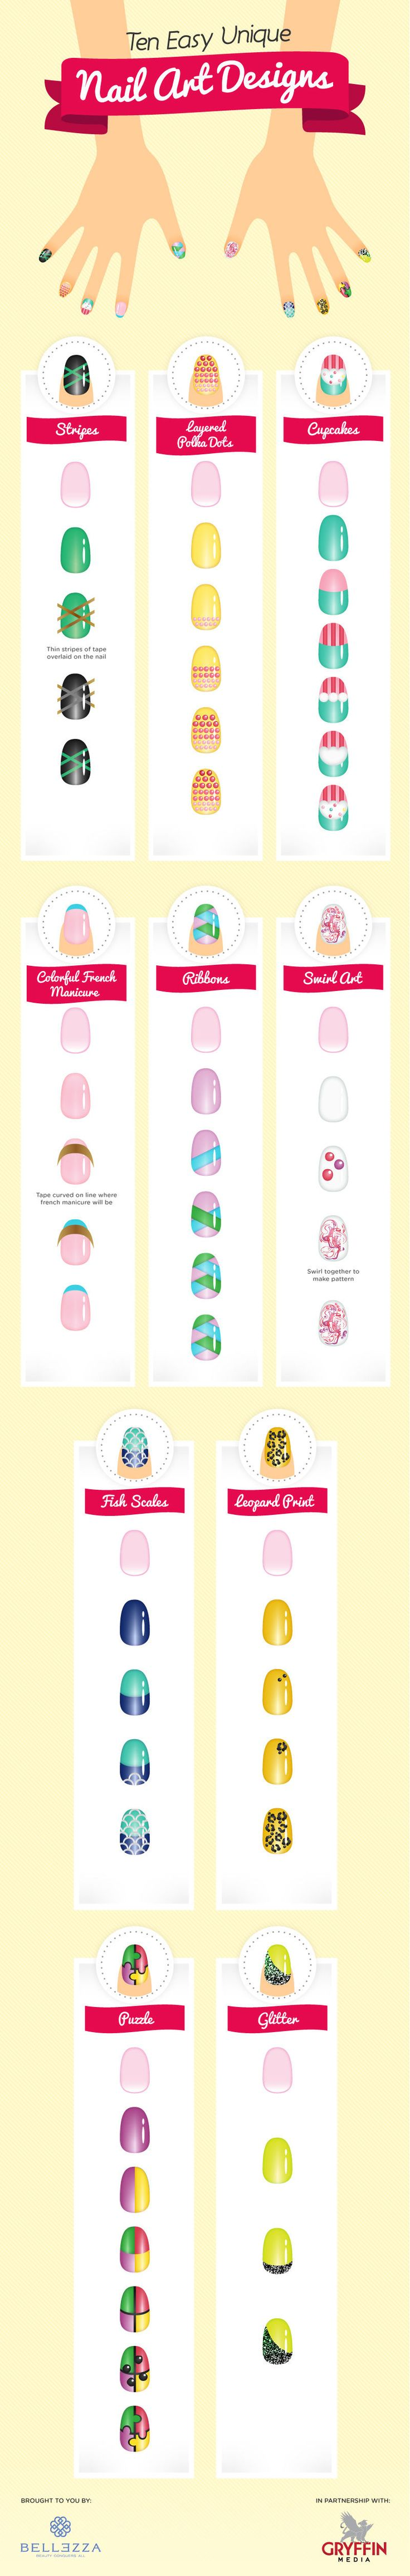 10 Easy Unique Nail Art Designs Pictures, Photos, and Images for Facebook, Tumblr, Pinterest, and Twitter